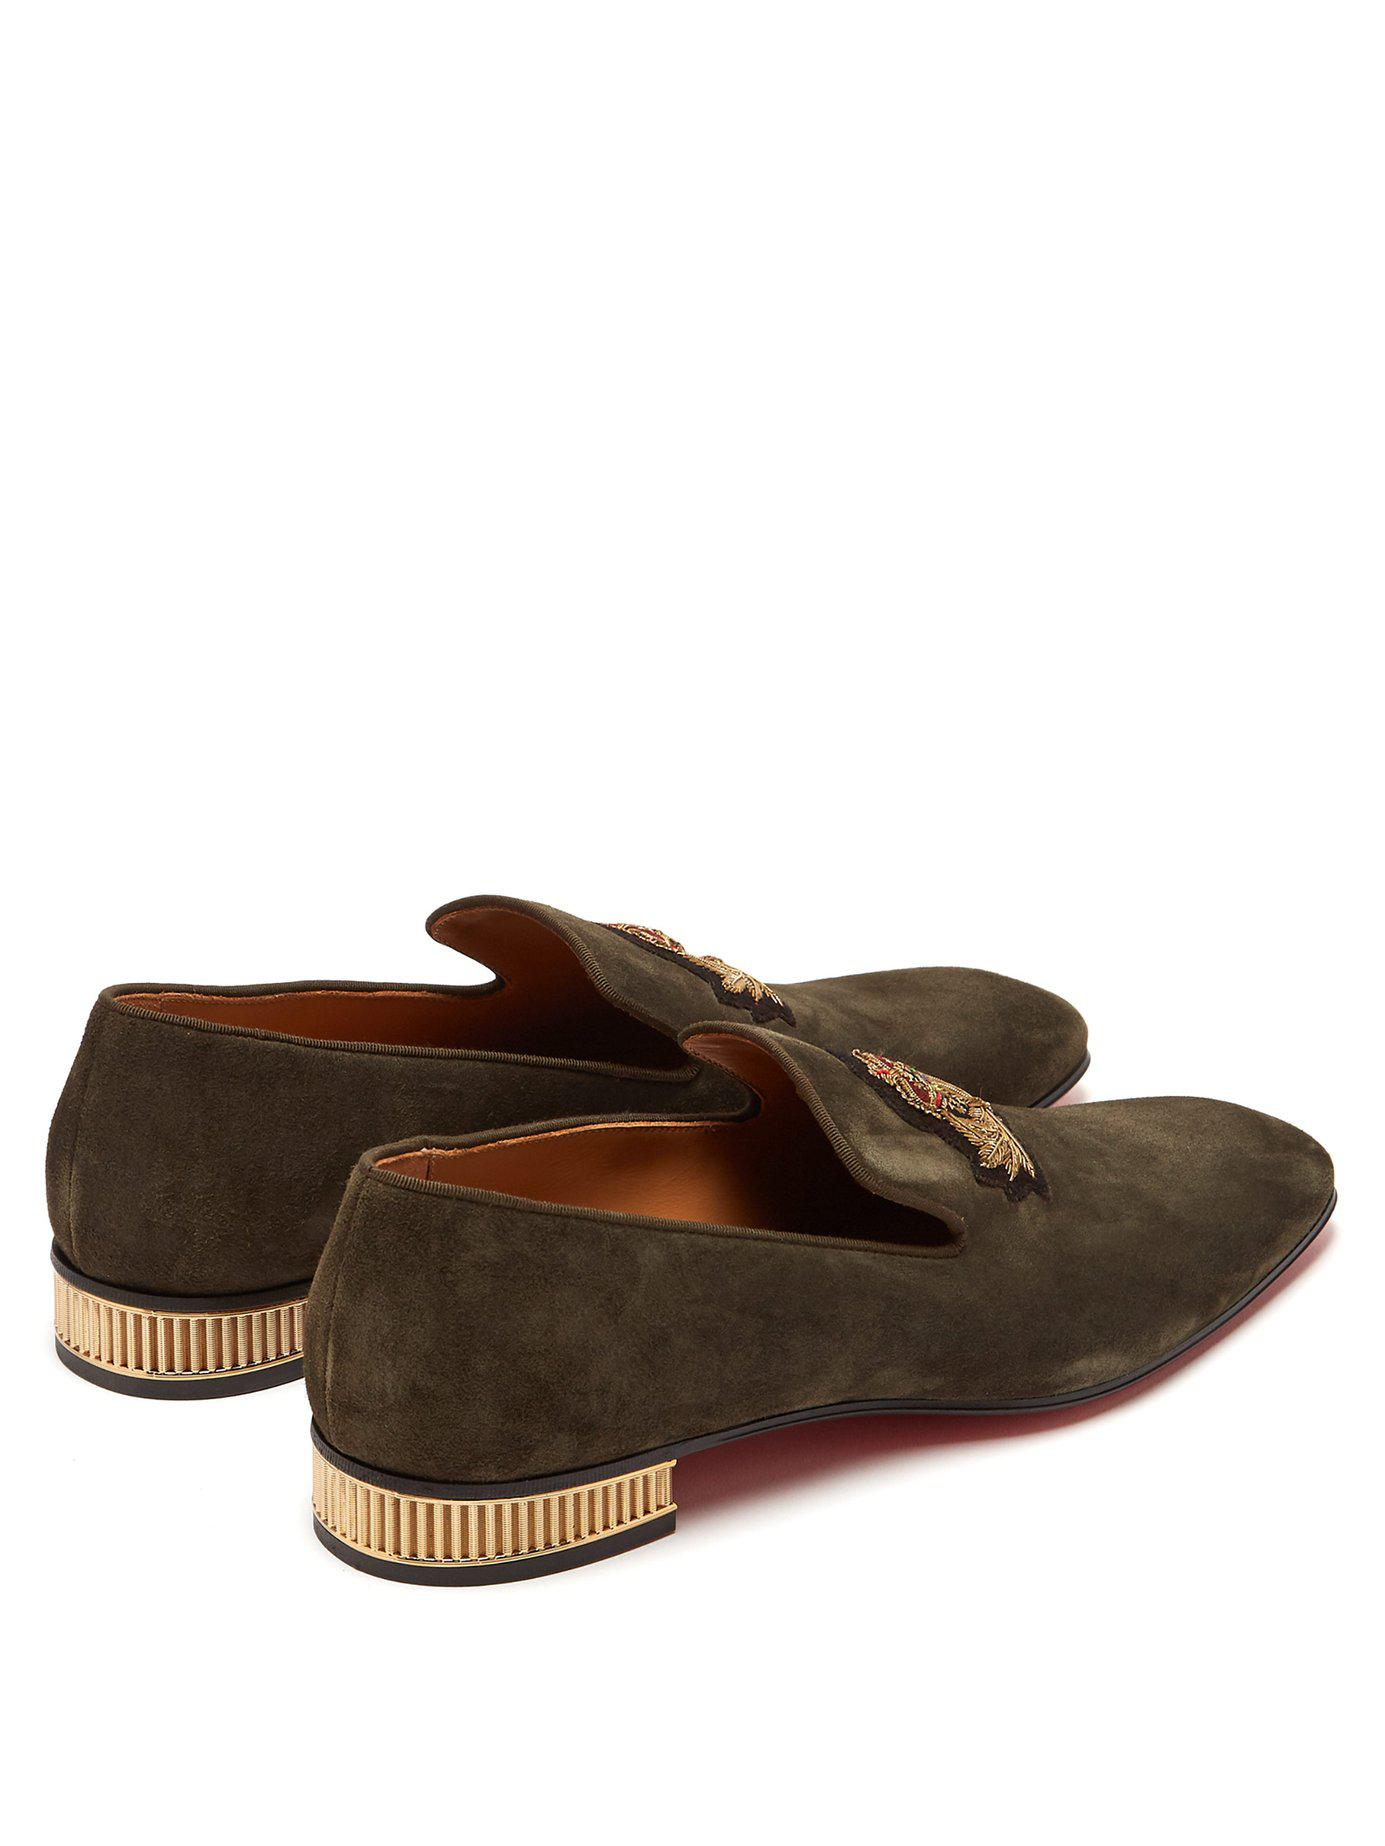 2b7786e05f1 Christian Louboutin - Brown Captain Colonnaki Crest Suede Loafers for Men -  Lyst. View fullscreen